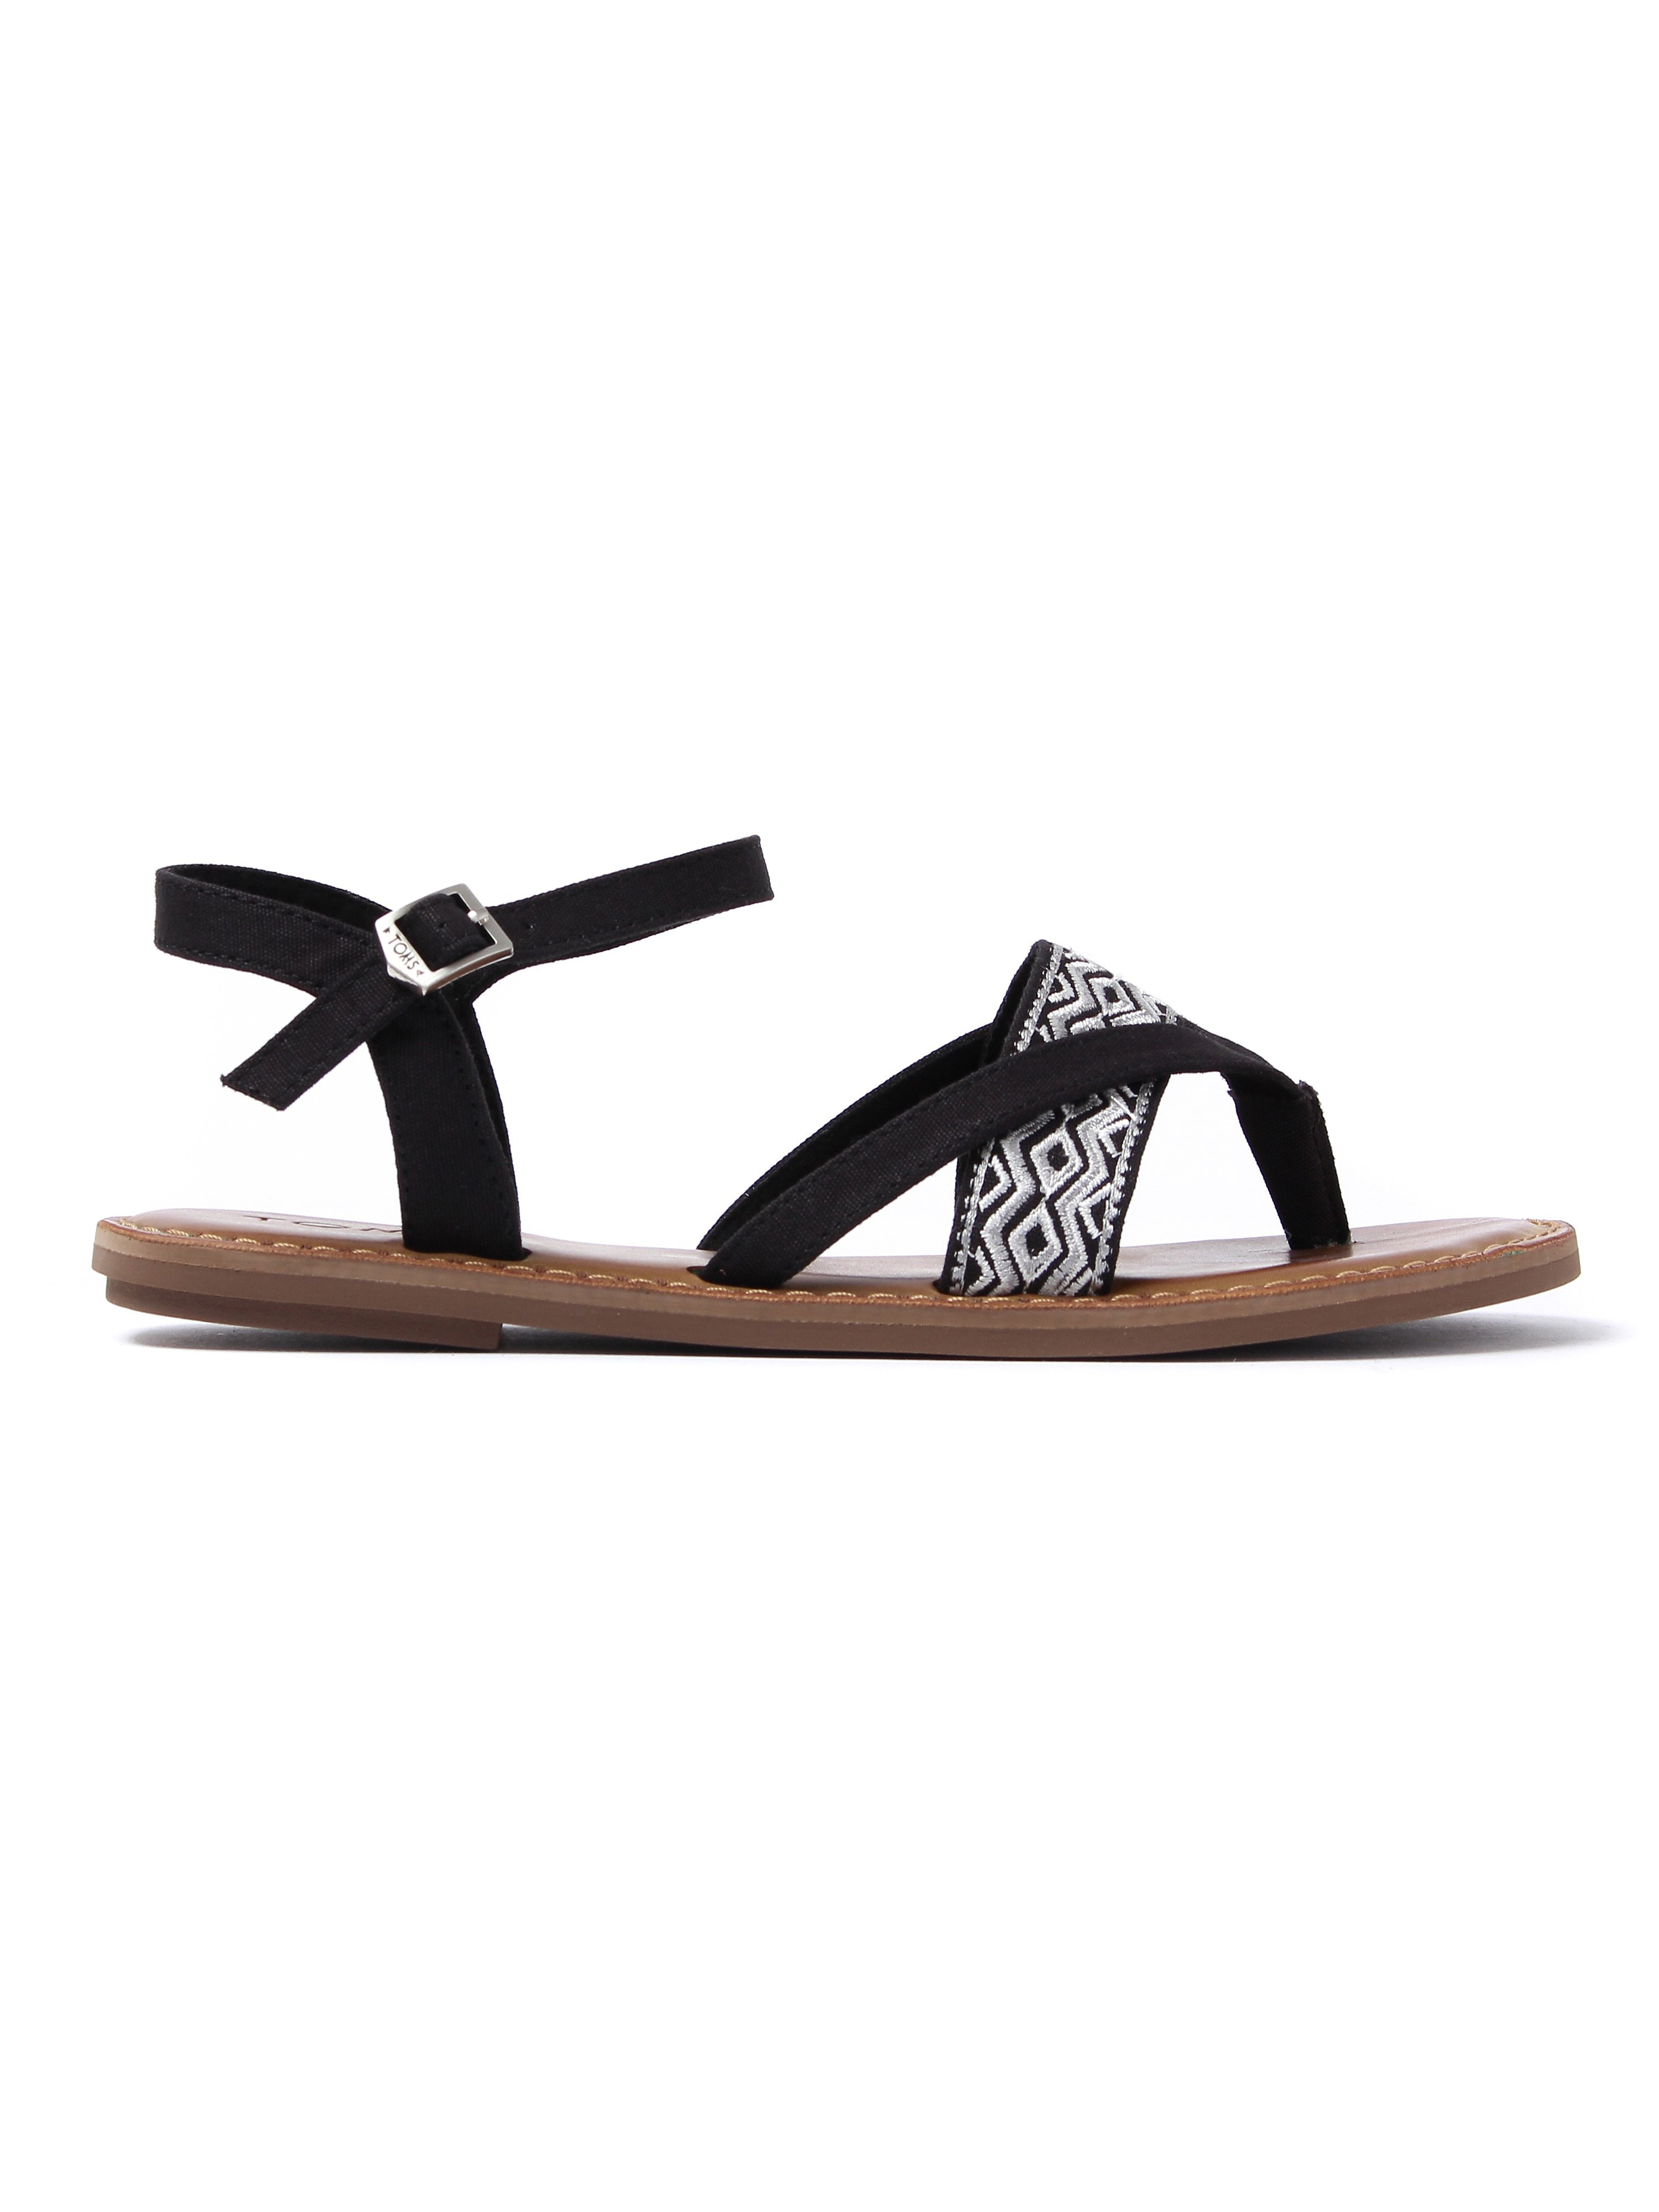 Toms Women's Lexie Embroidered Sandals - Black